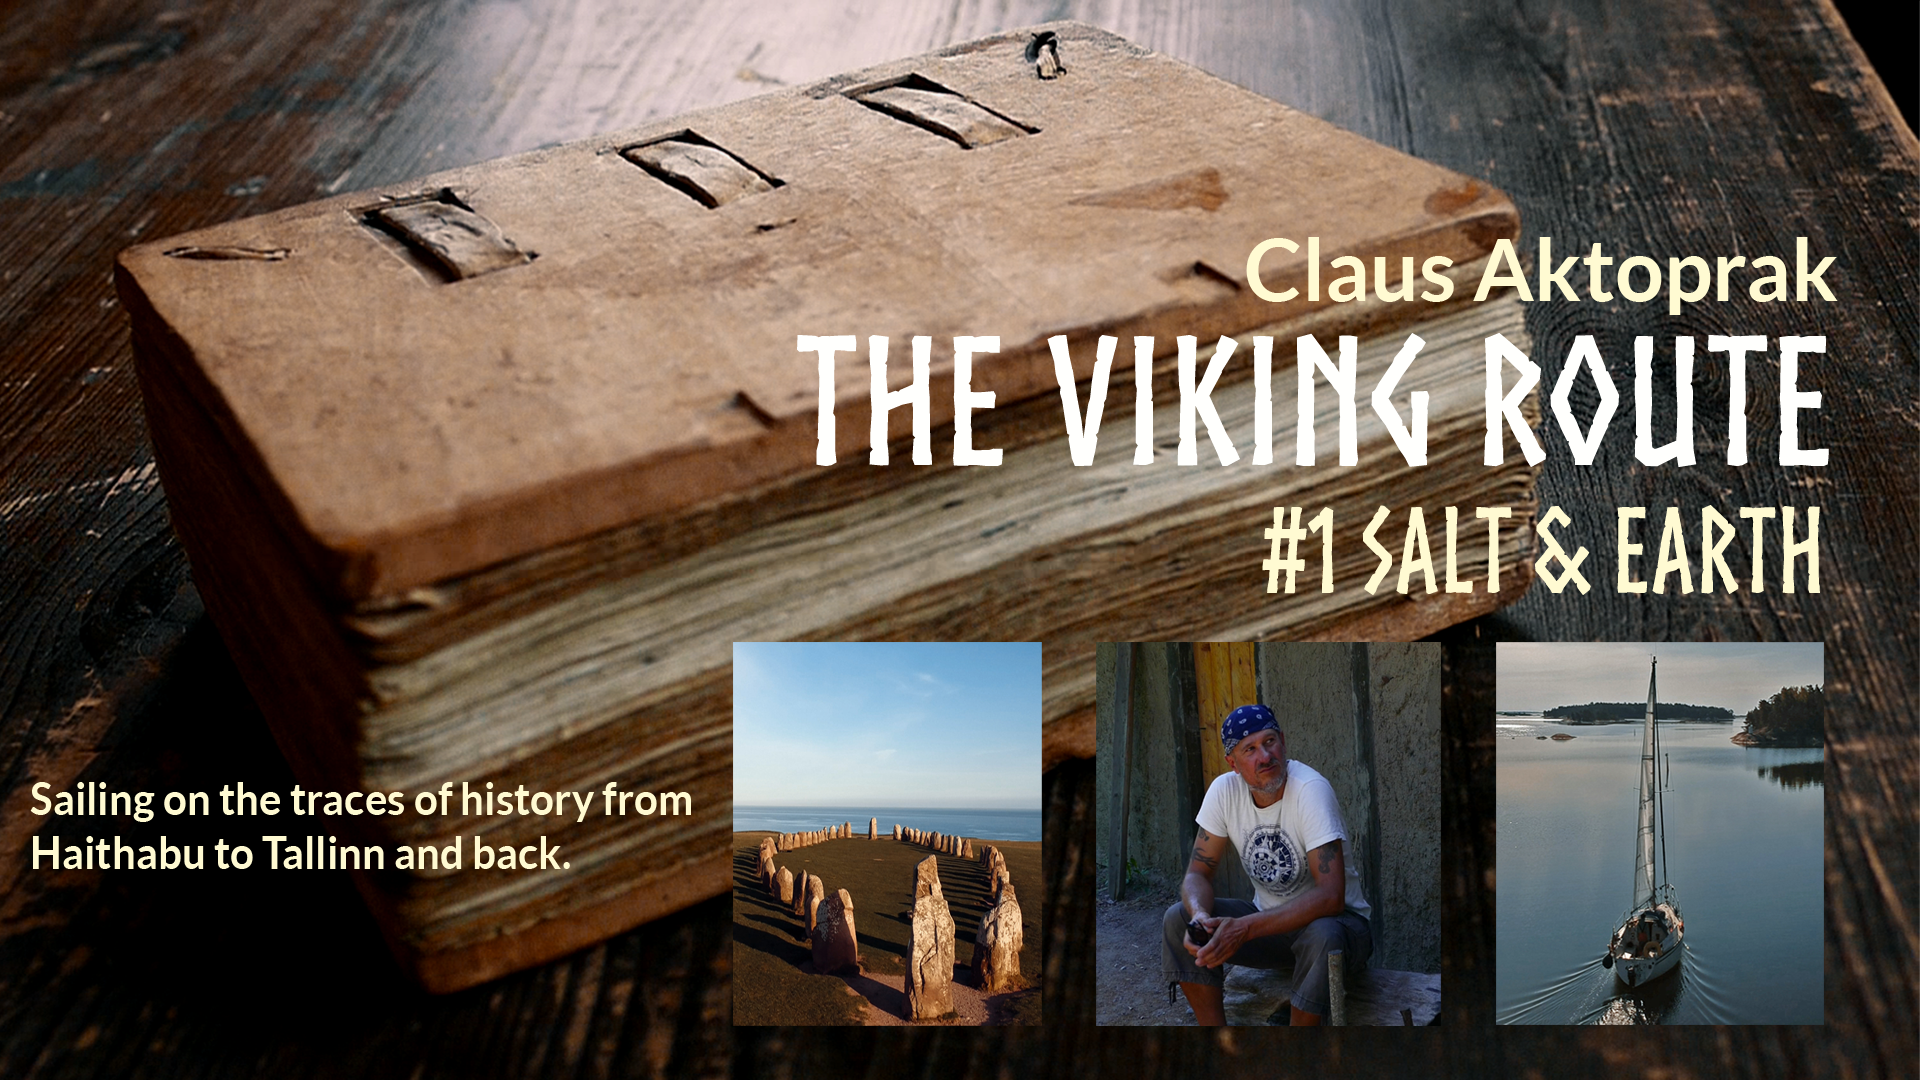 Salt & Earth - The Viking Route #1